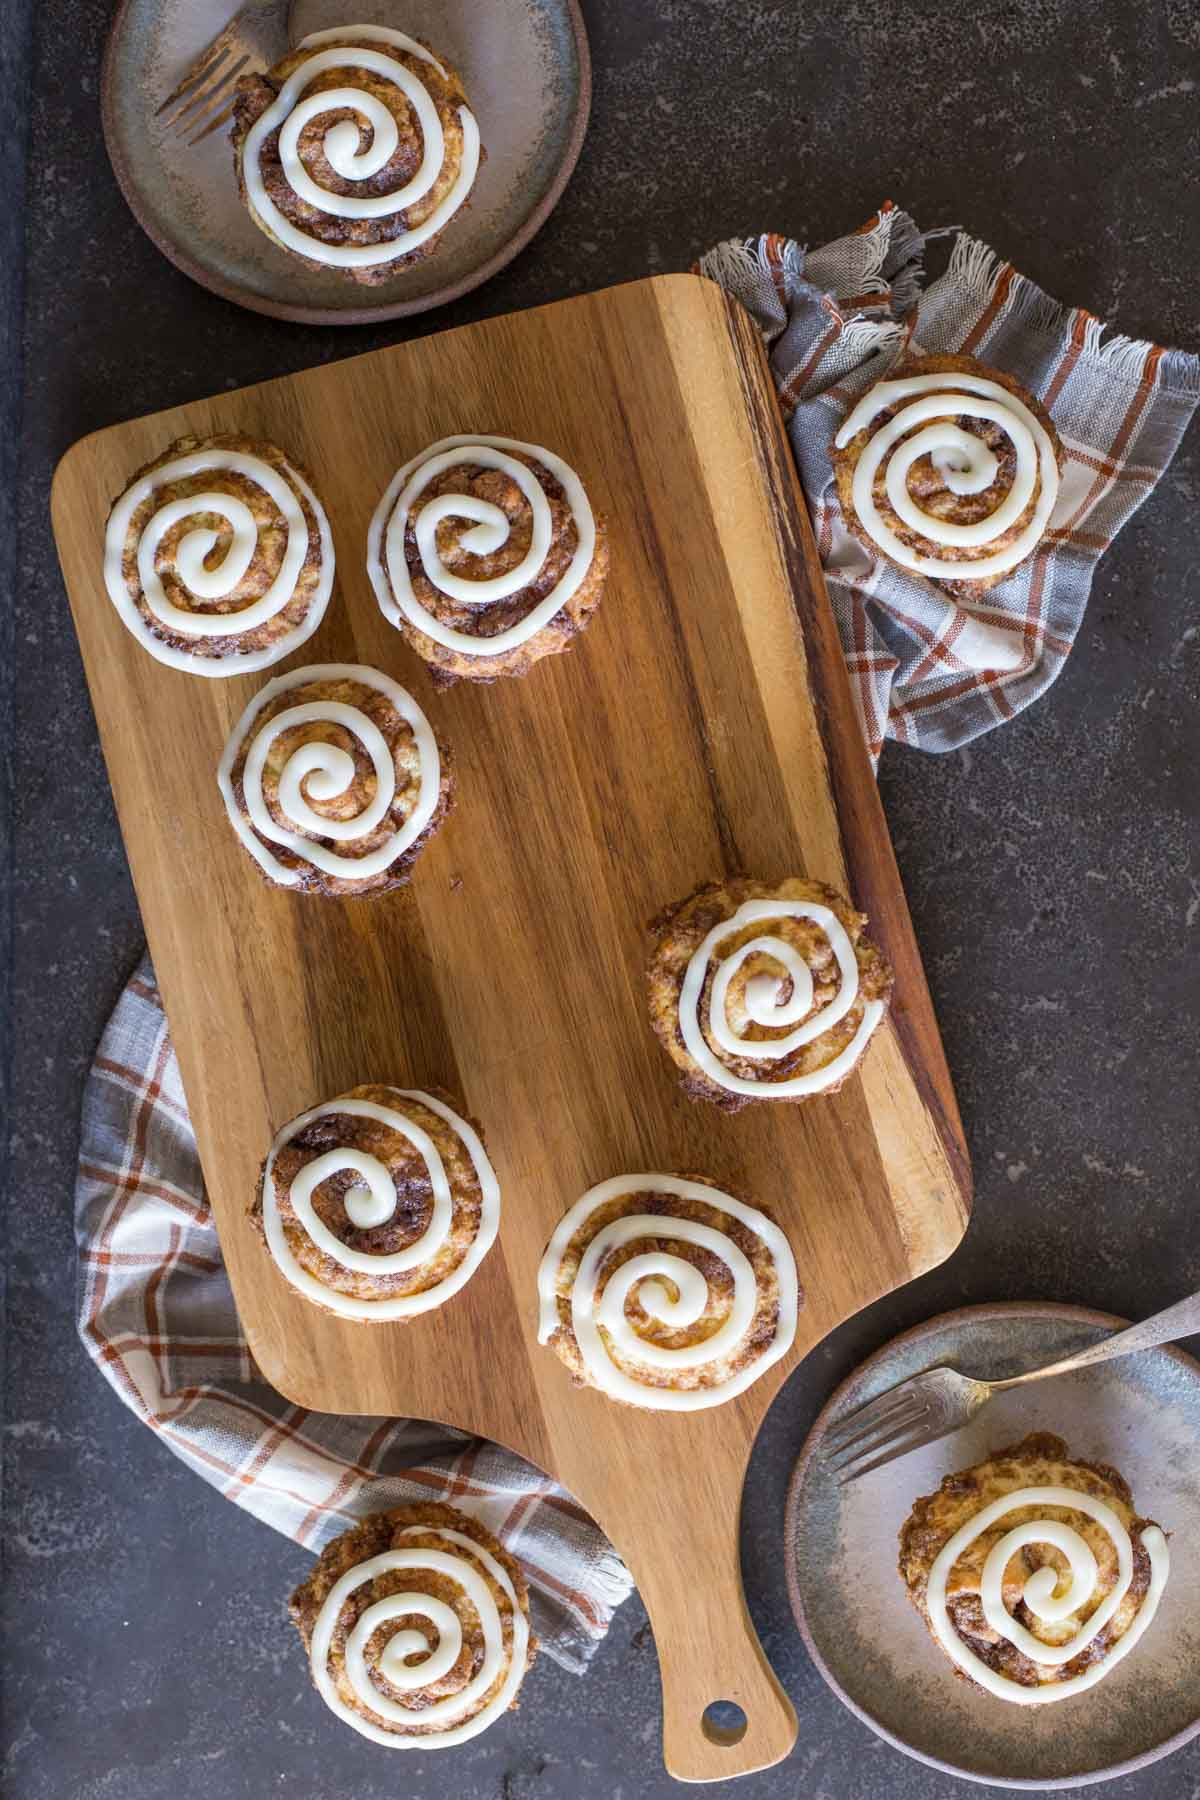 Cinnamon Roll Muffins with a cream cheese icing swirl on a wooden cutting board.